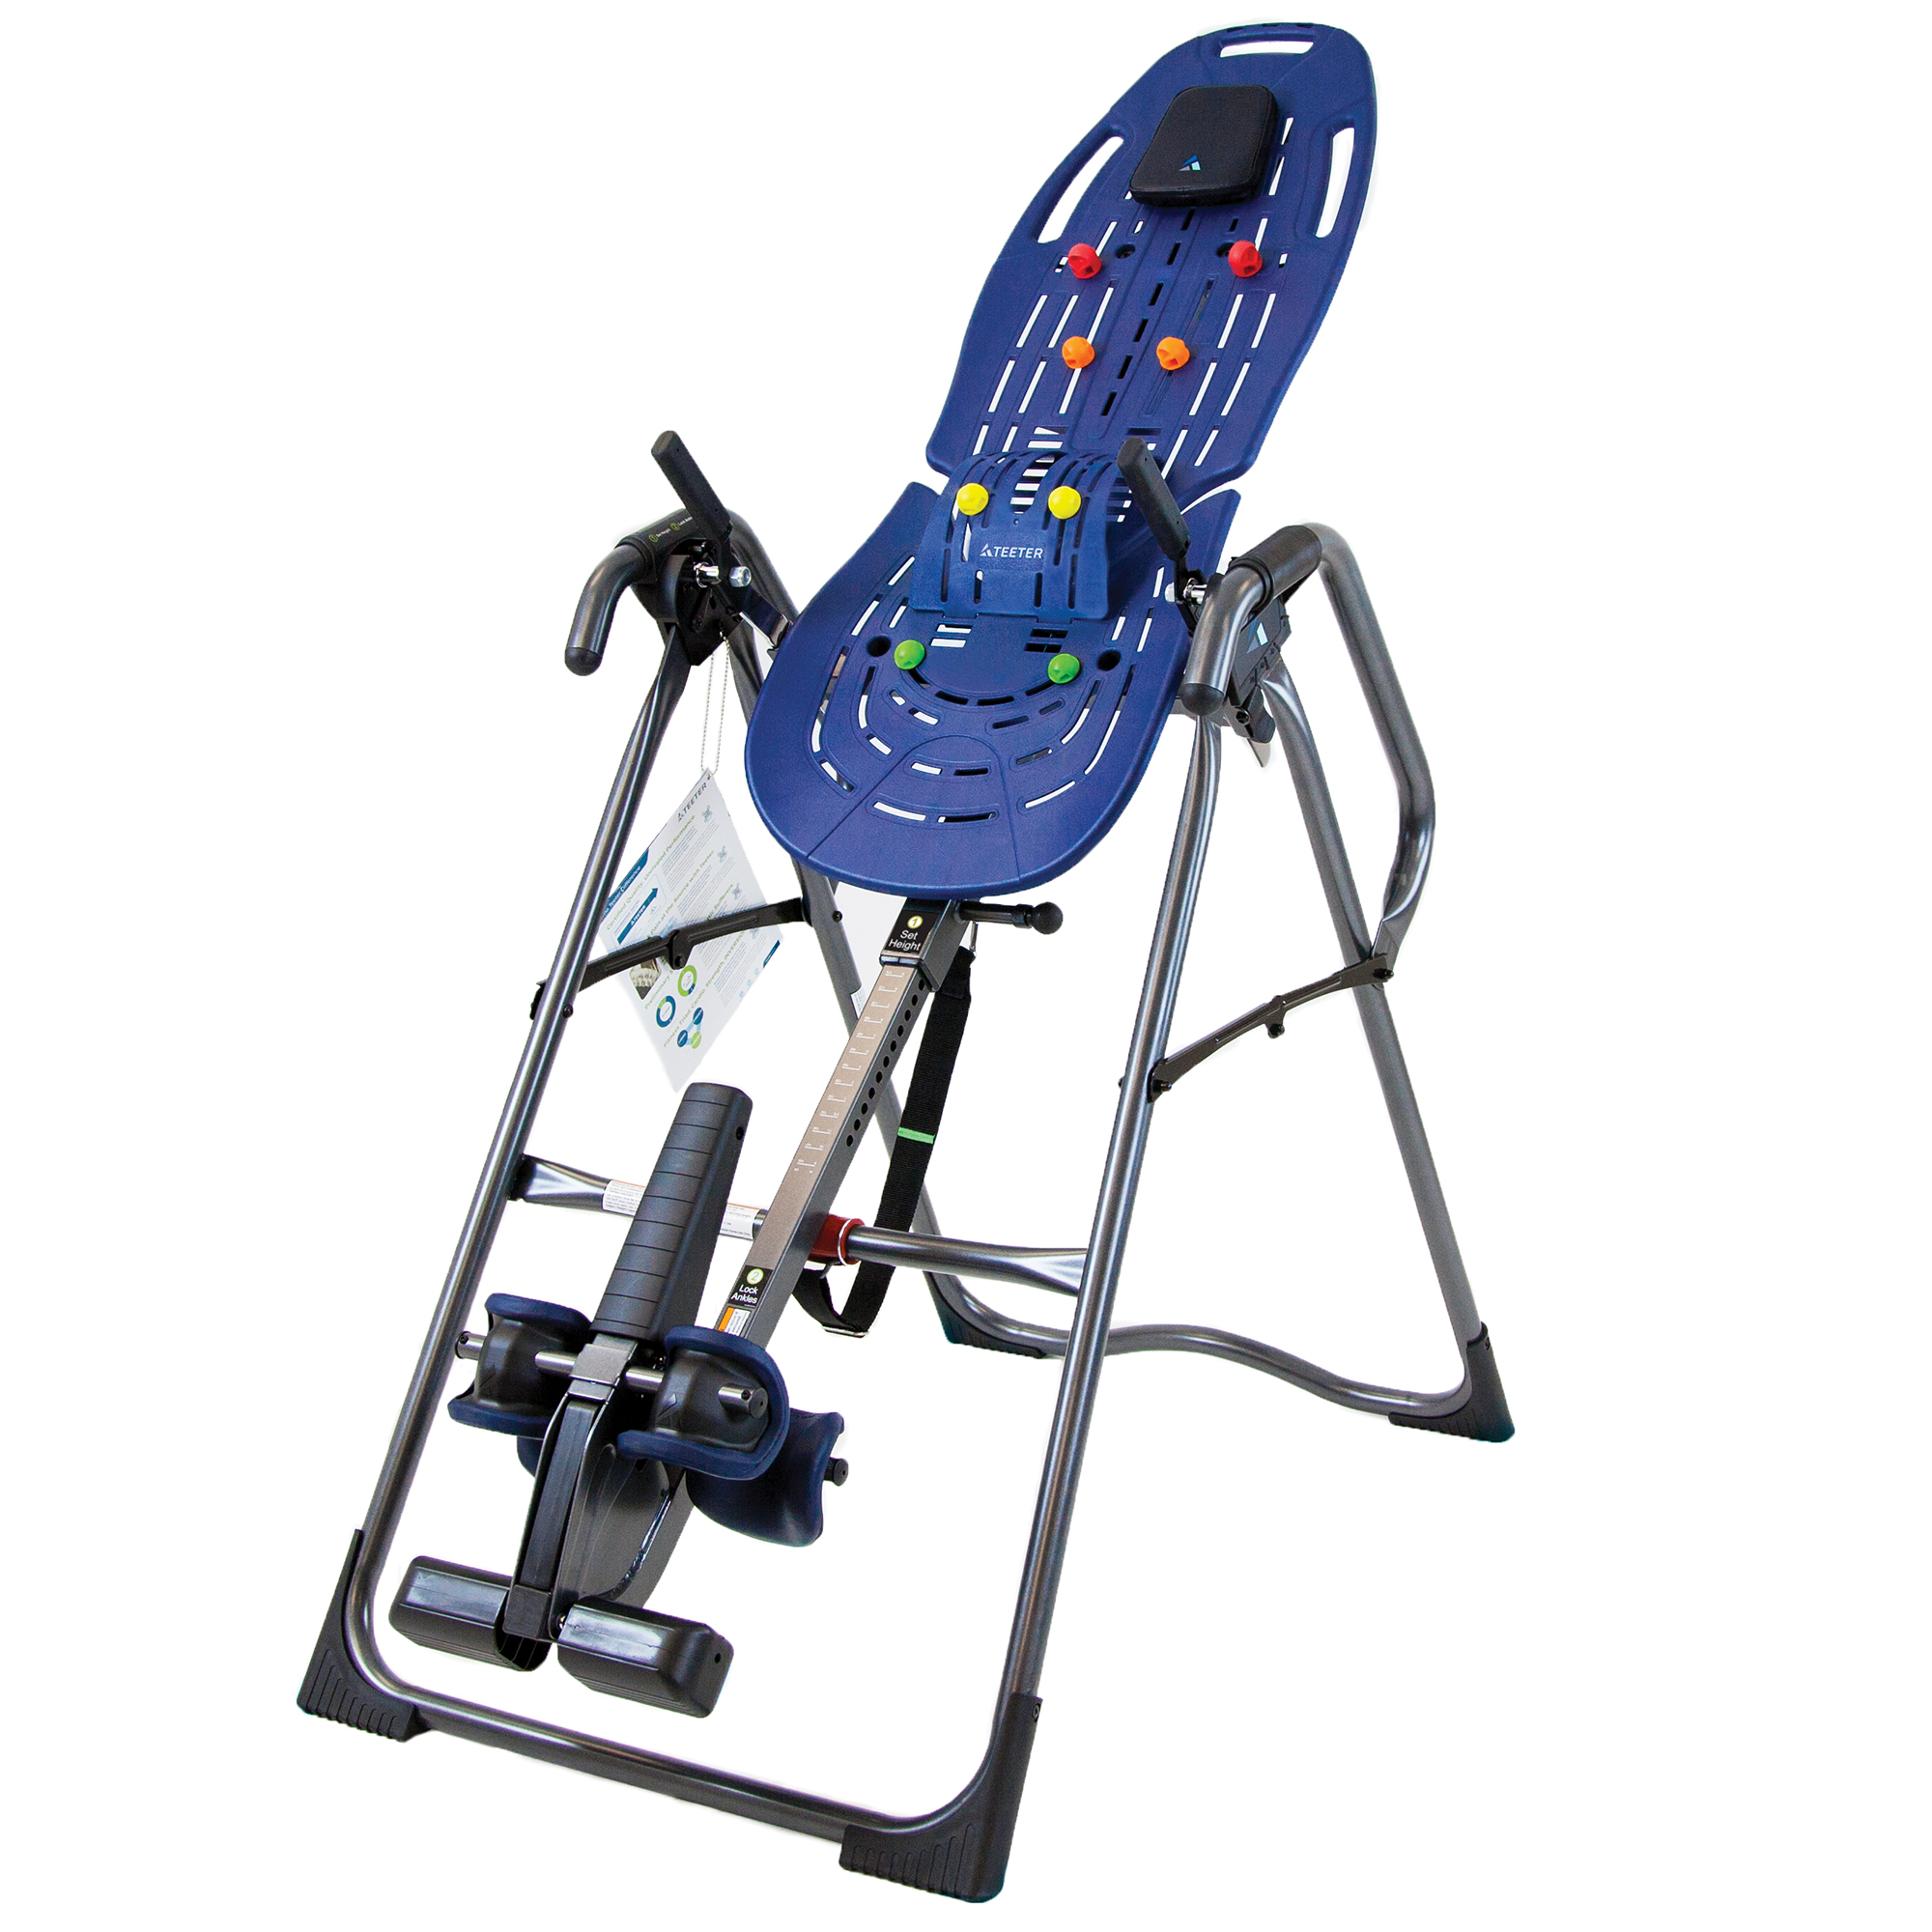 Teeter hang Ups EP-960 Ltd. Inversion Table with Back Pai...